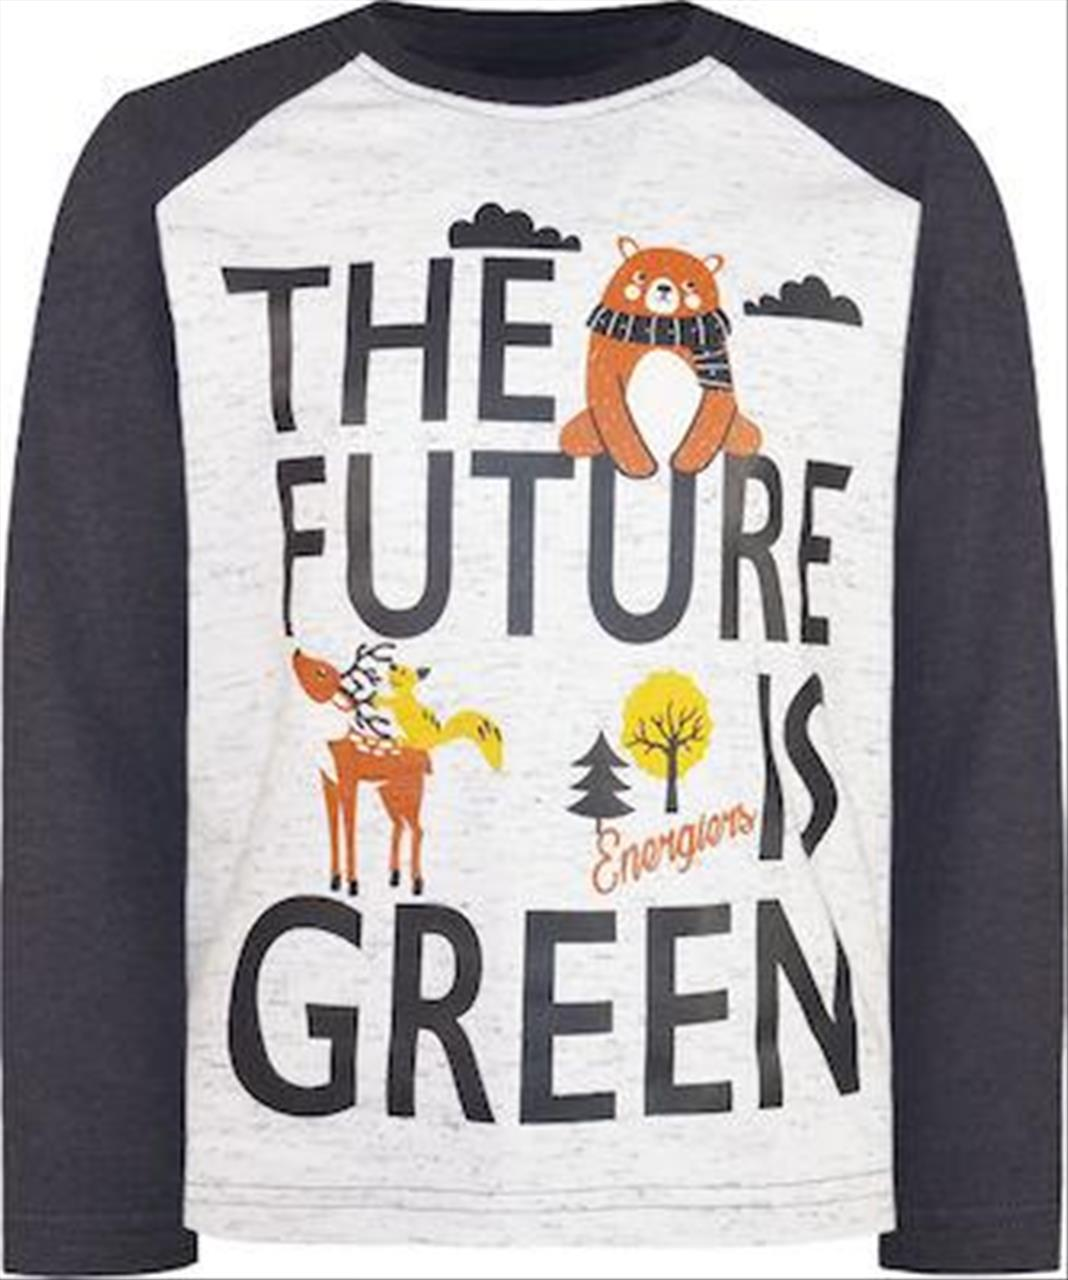 T-SHIRT M/M *THE FUTURE IS GREEN BABY BOY BY ENERGIERS